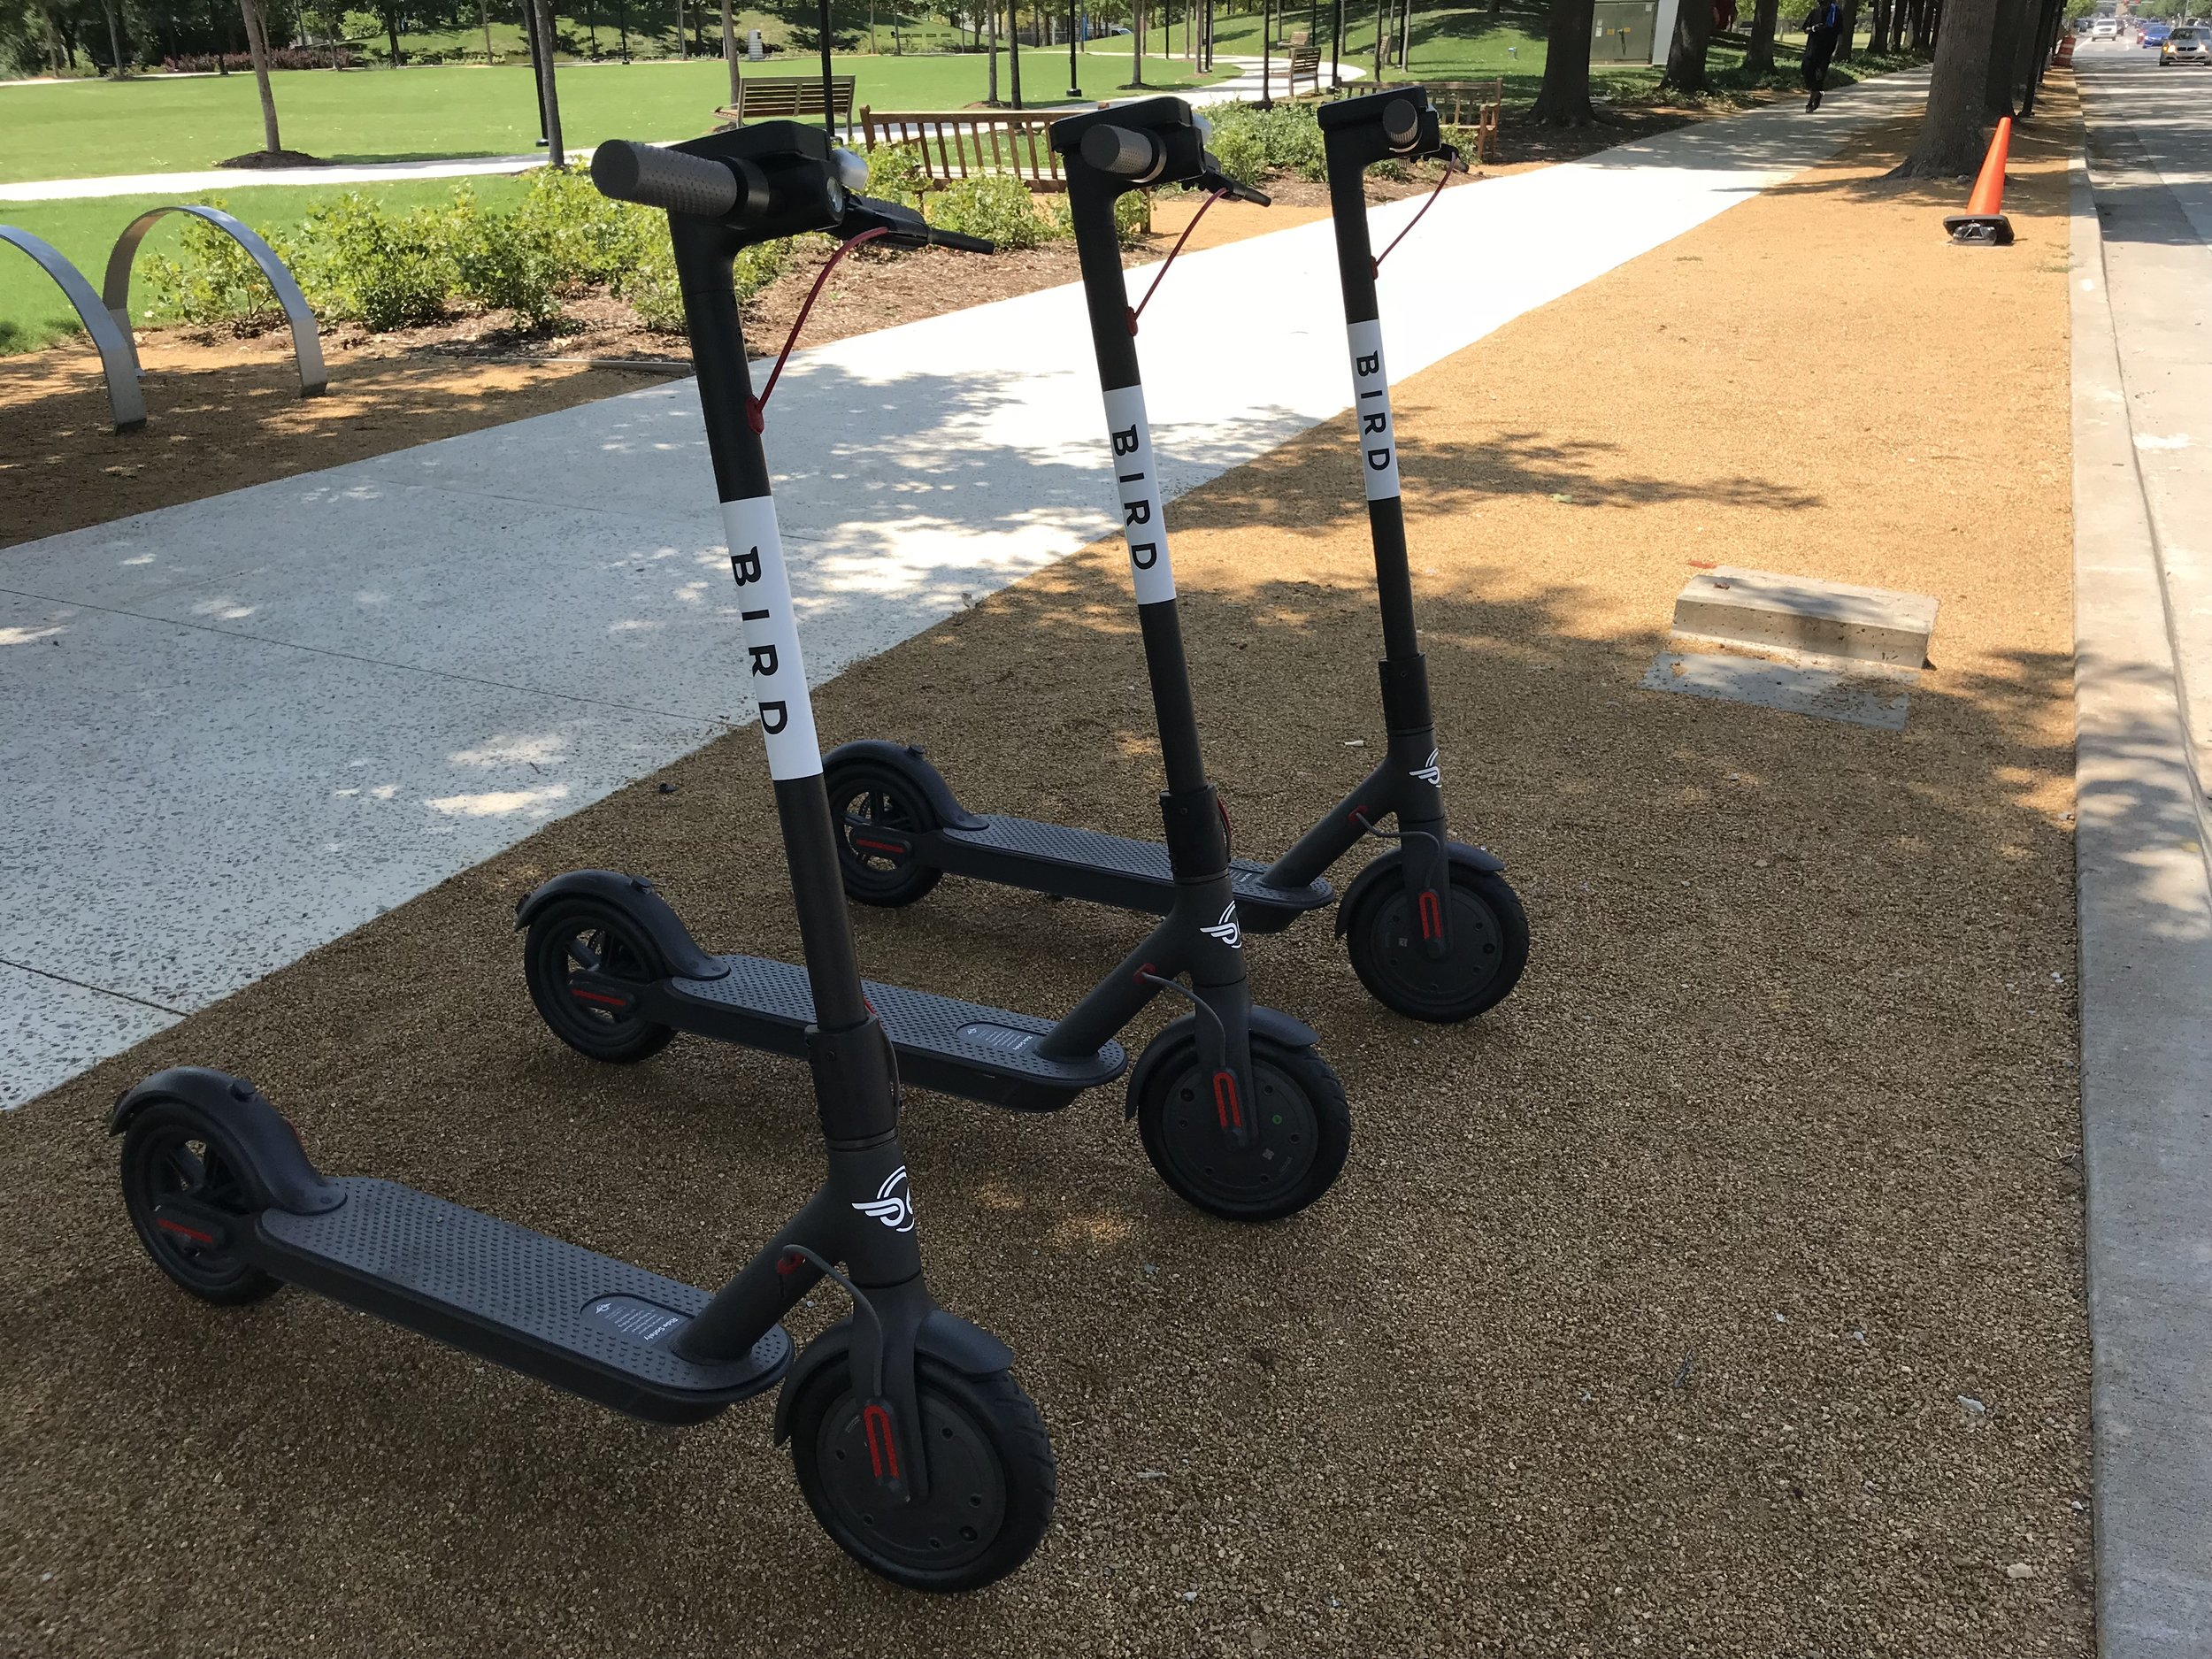 An Illegal Nest - Three Bird Scooters Parked Illegally at the Myriad Gardens in Oklahoma City